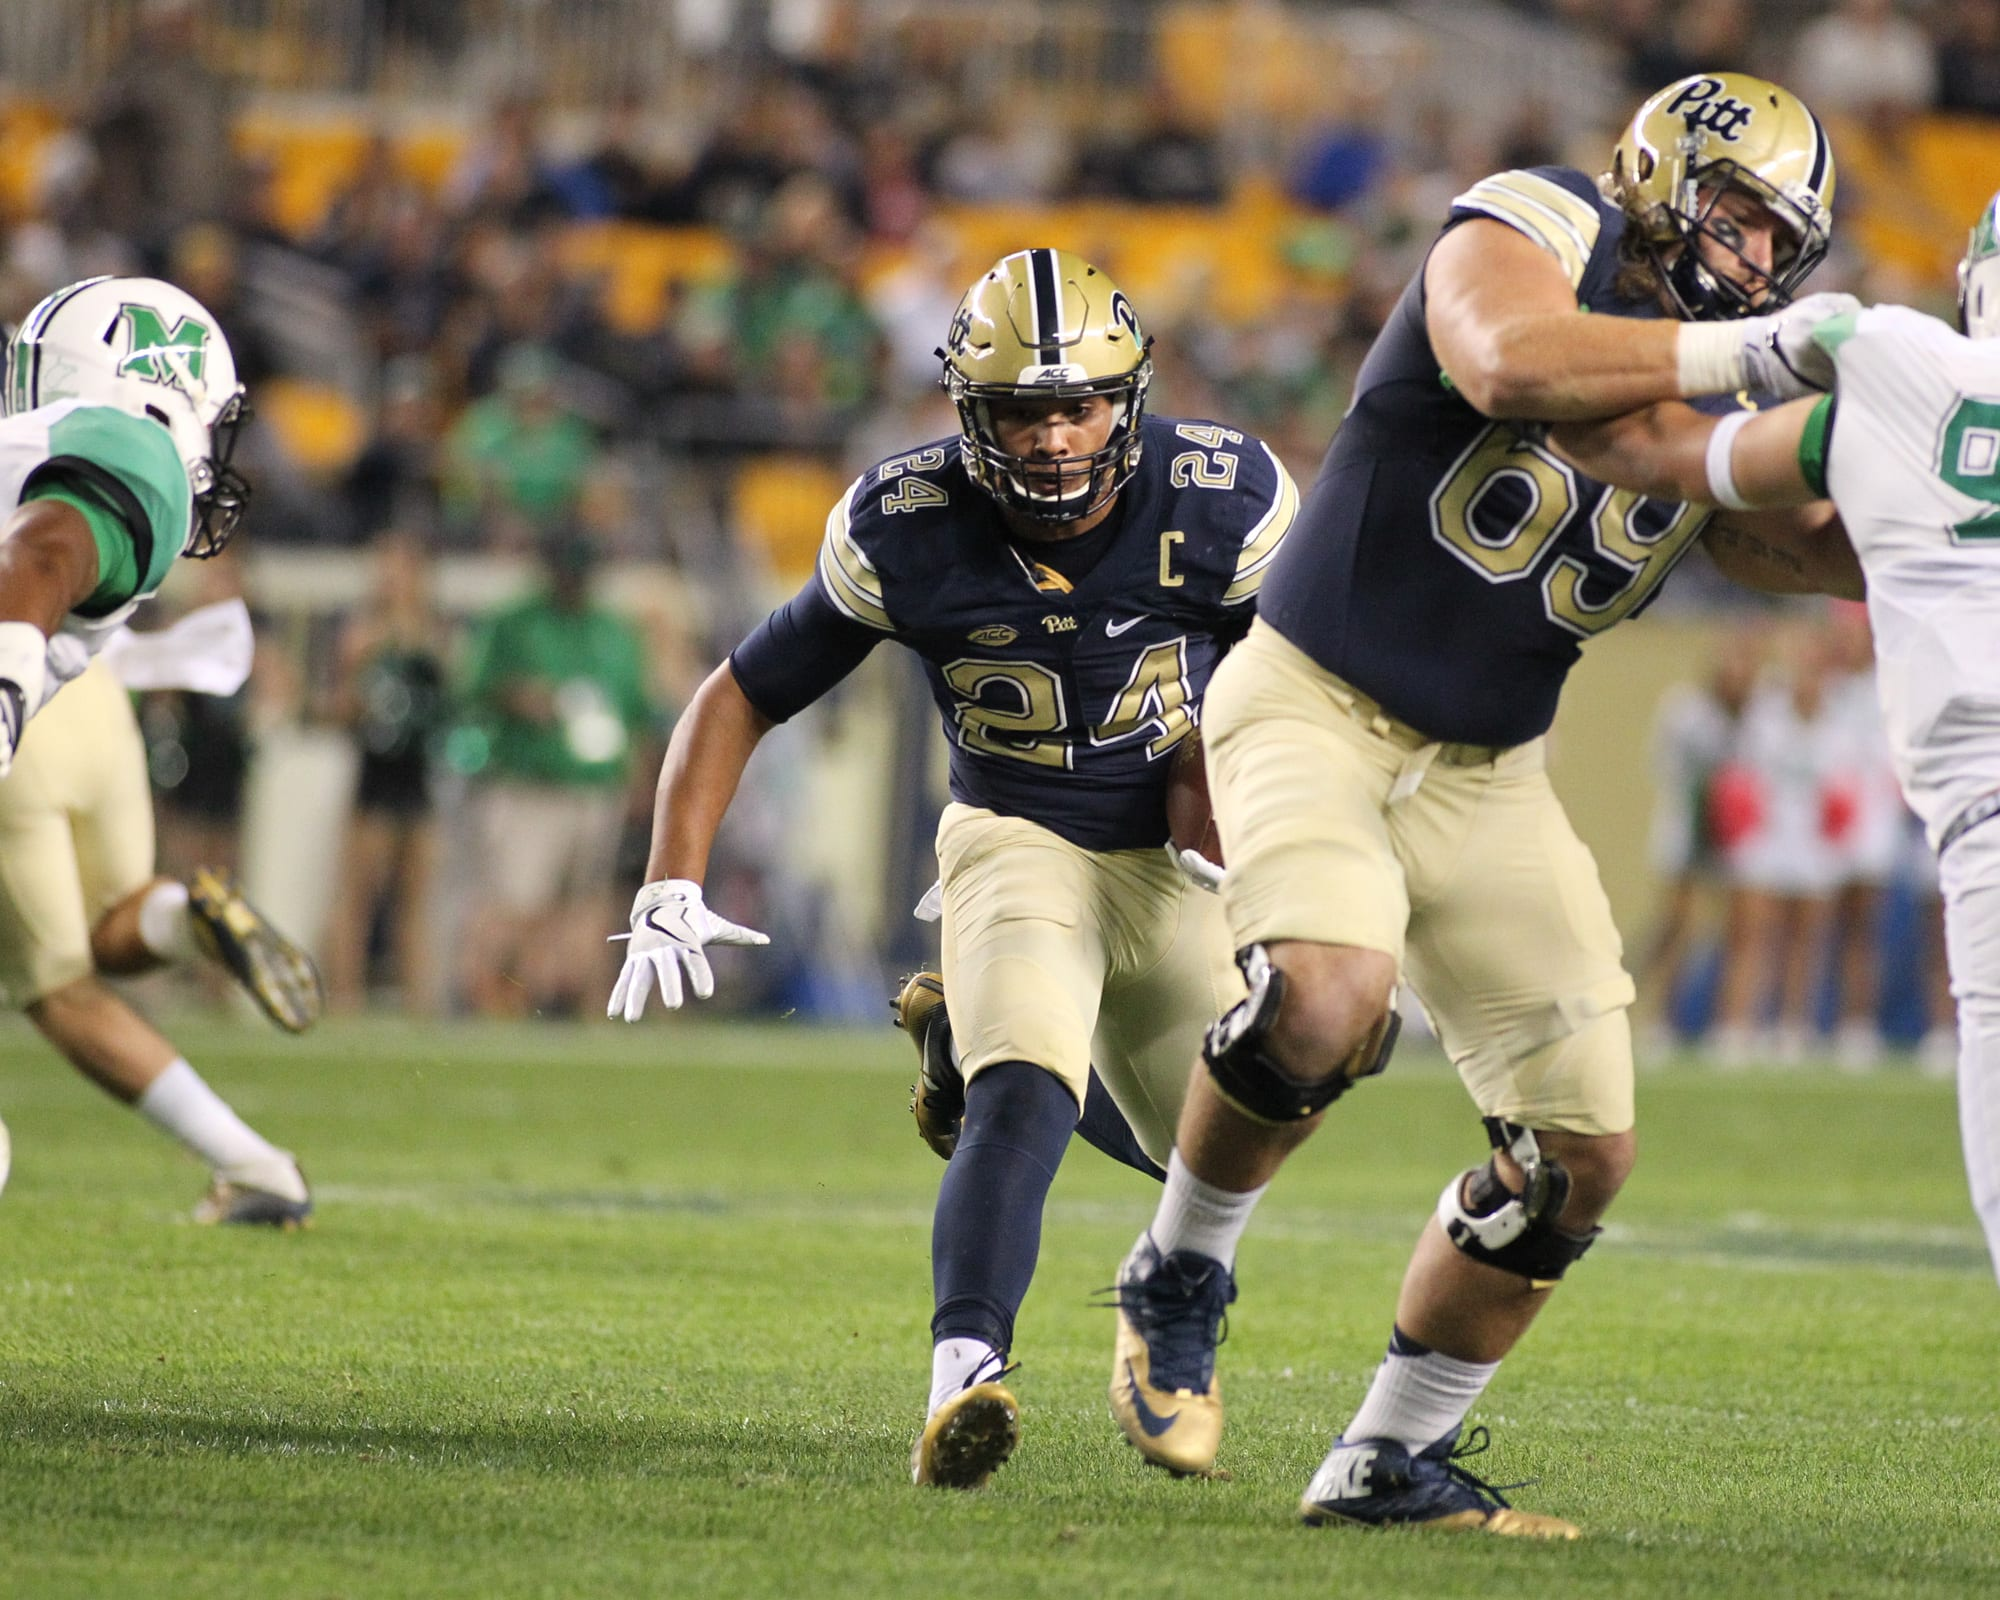 Defense wakes after half, leading Pitt past Virginia, 45-31